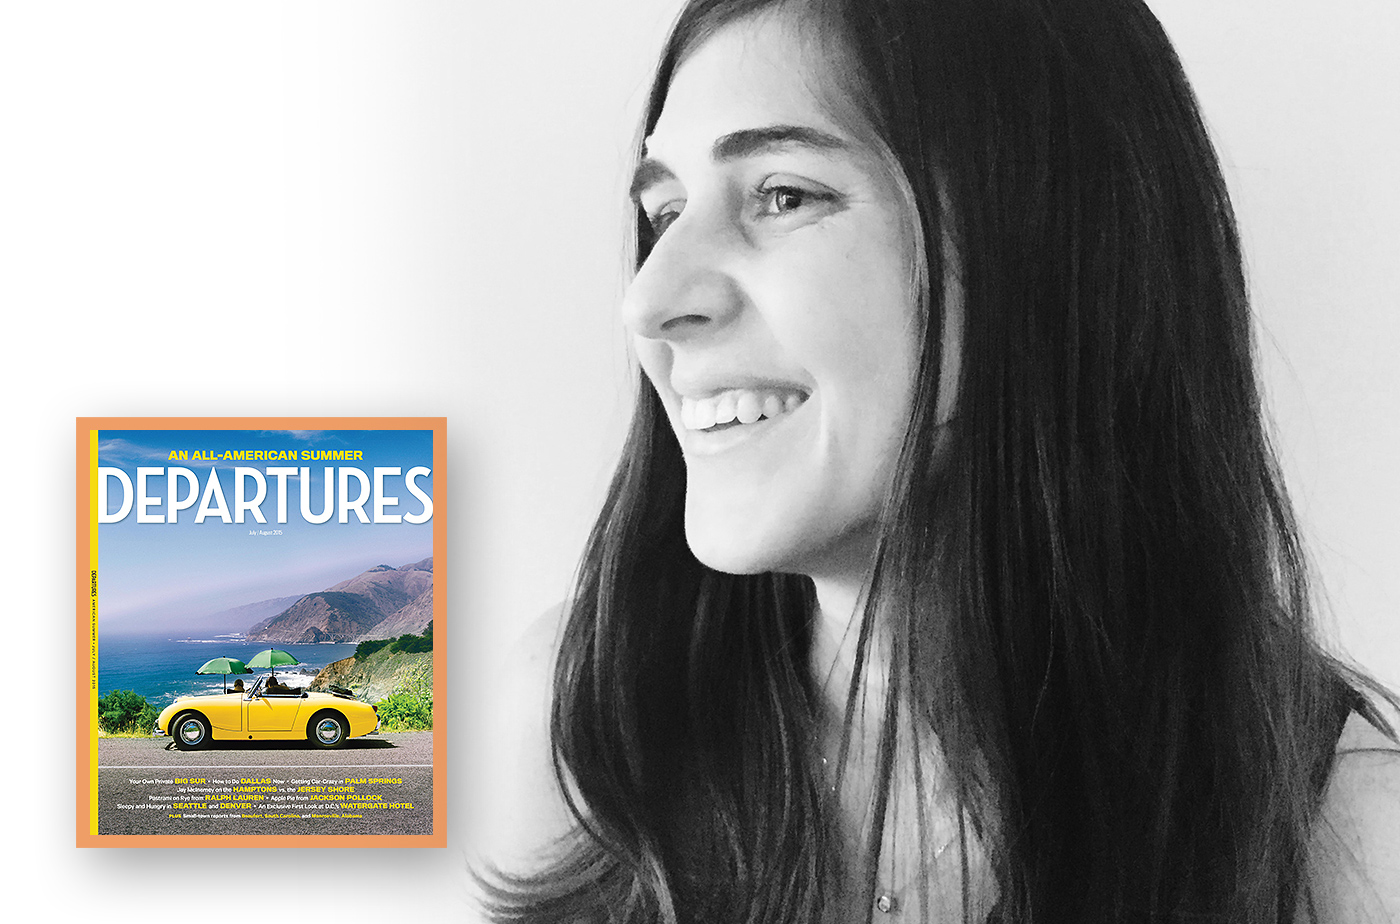 Catapult  classes: Jessica Flint, The Art of Travel Writing, Nonfiction, Intensive